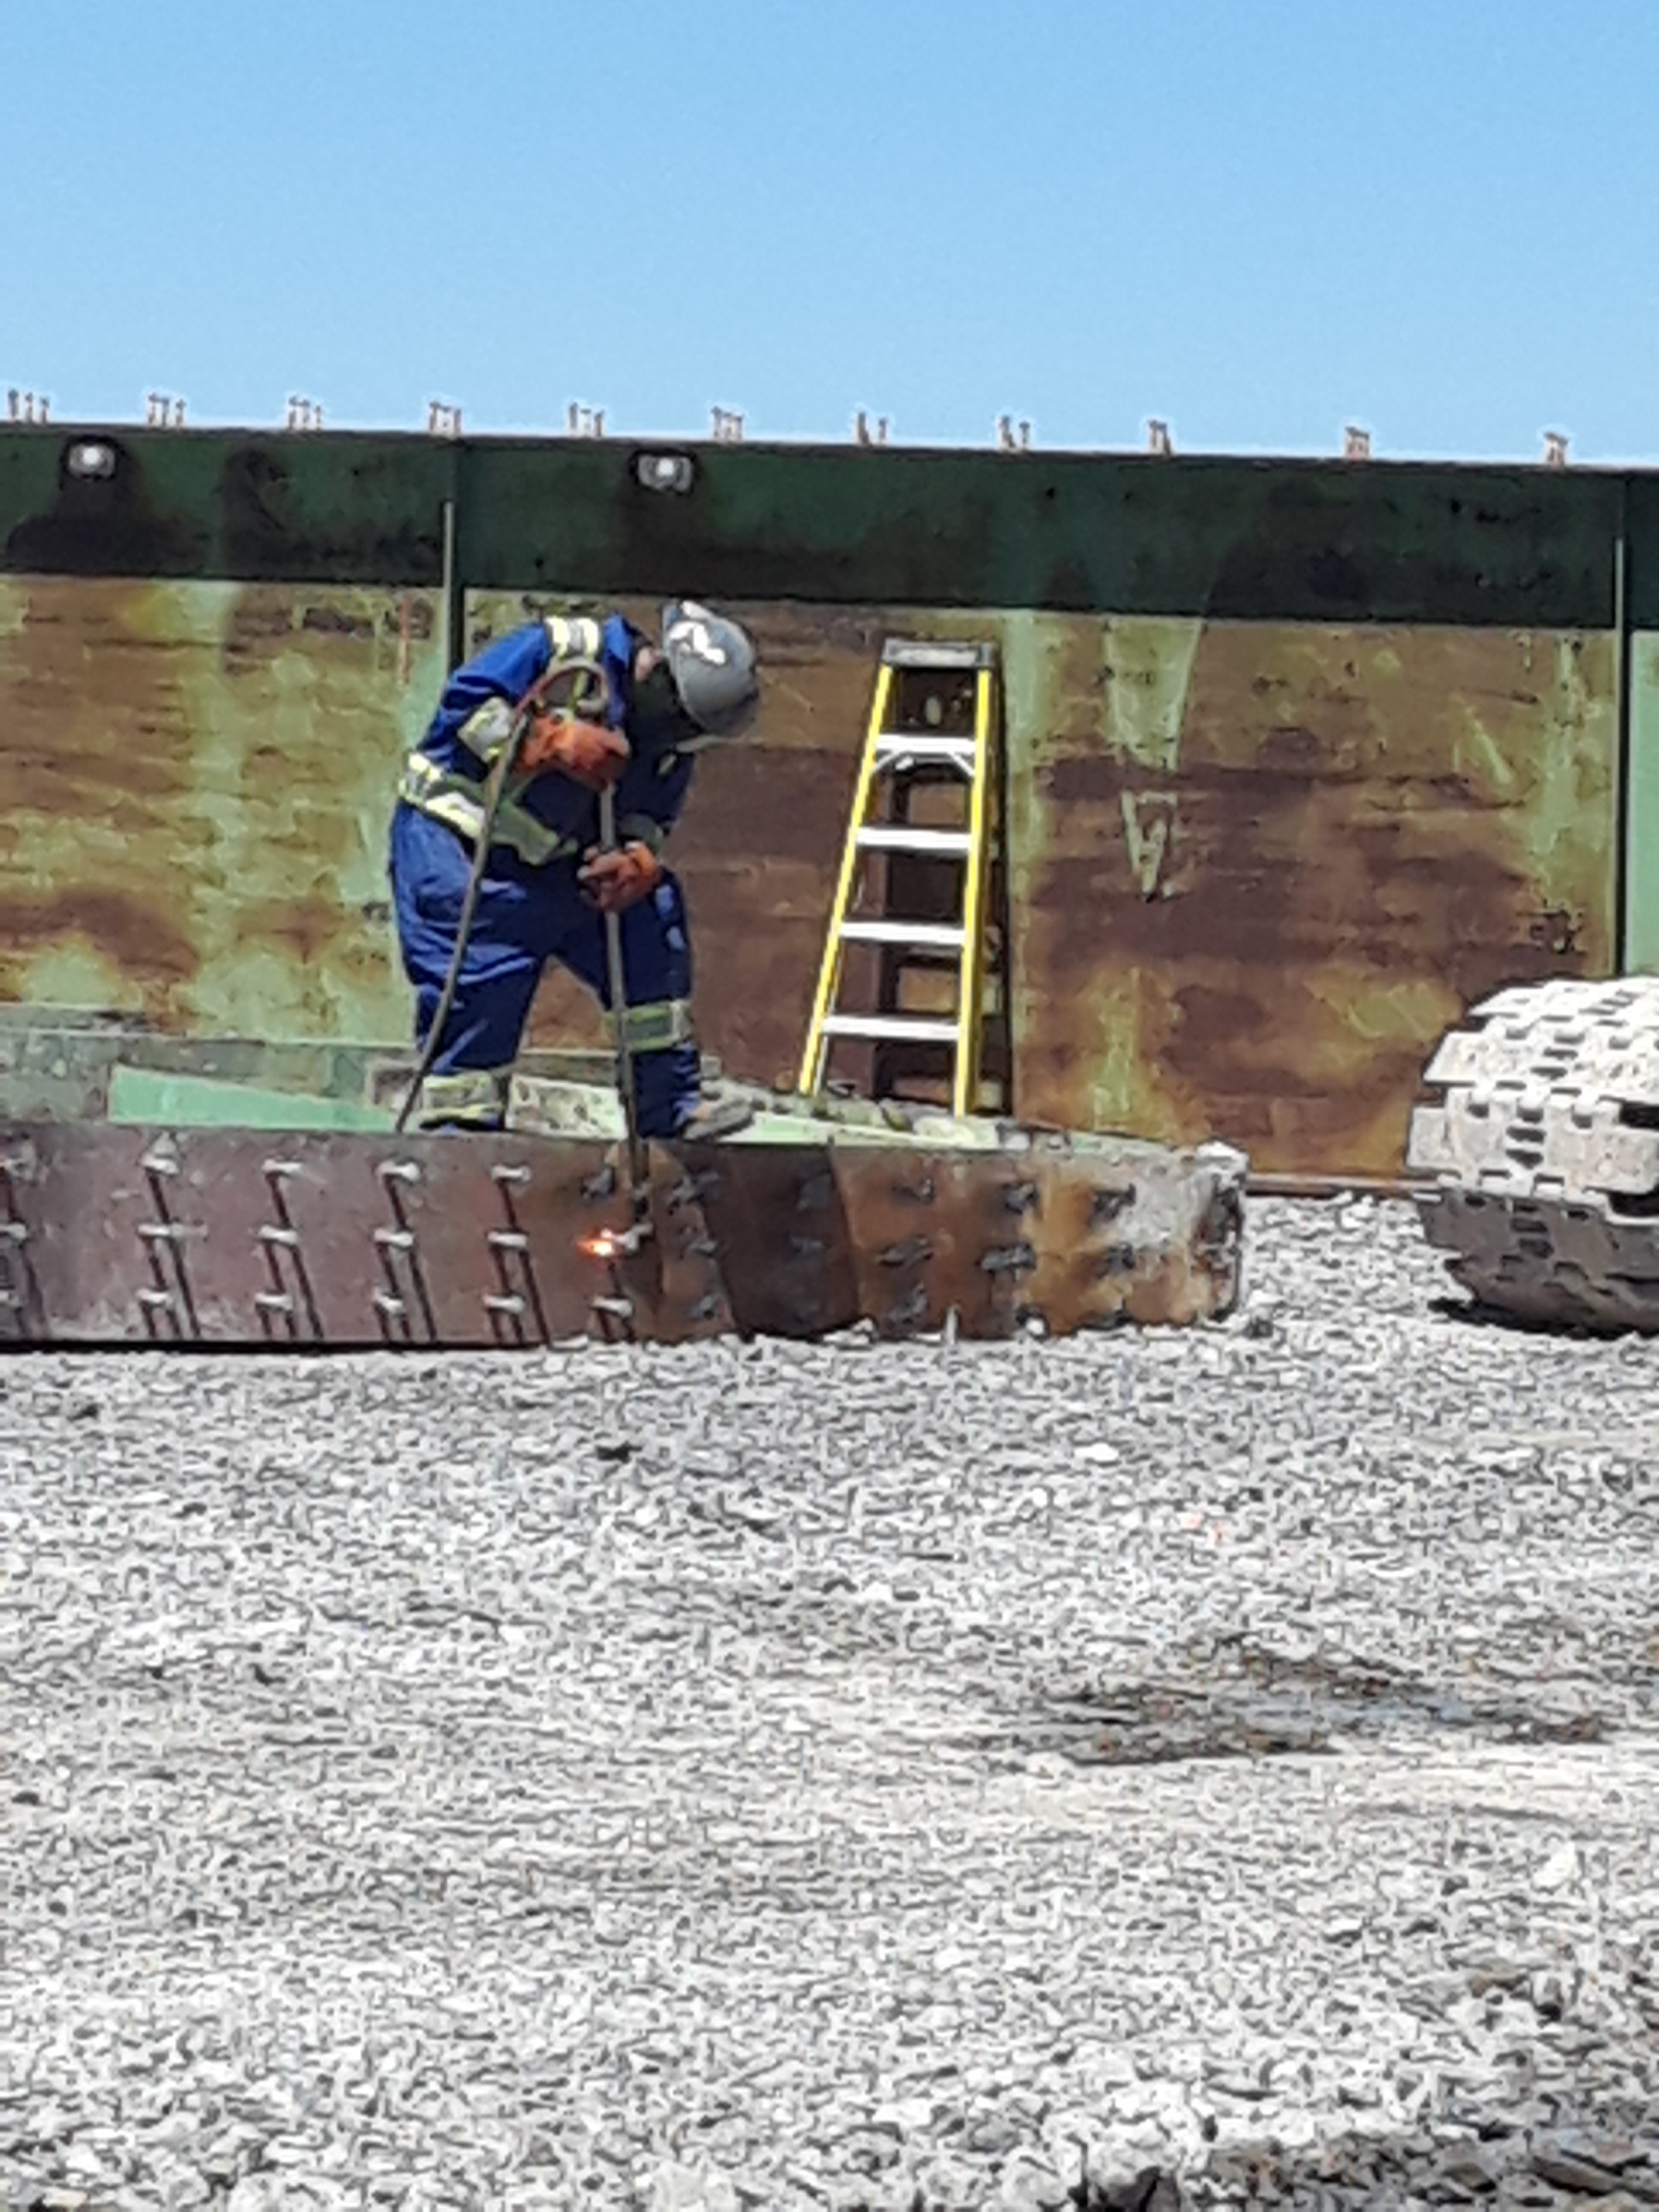 Section of girder being cut for removal from site